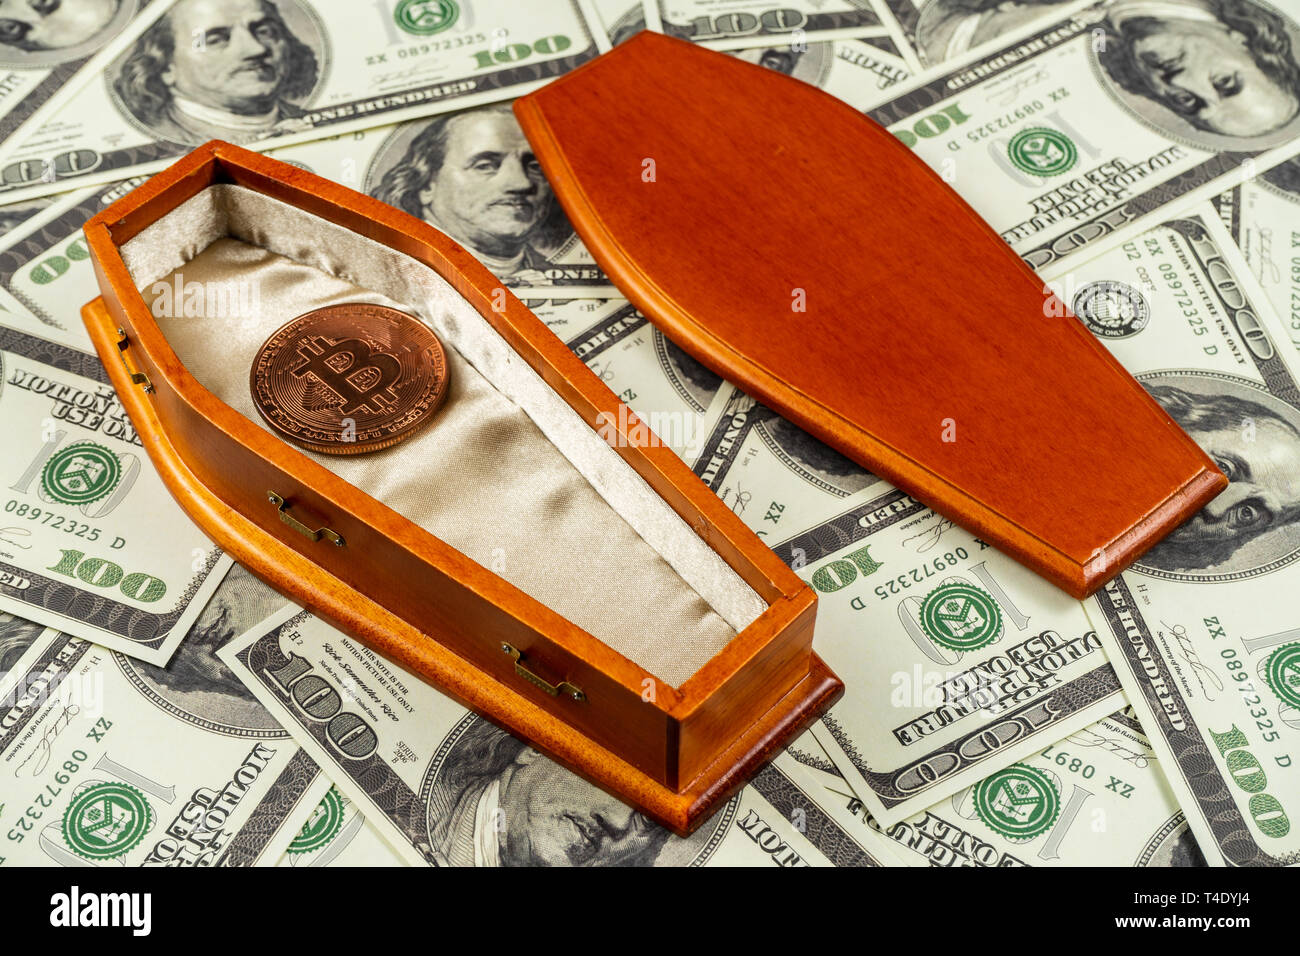 The value of bitcoin has seen significant losses.Bitcoin price going down concept. - Stock Image